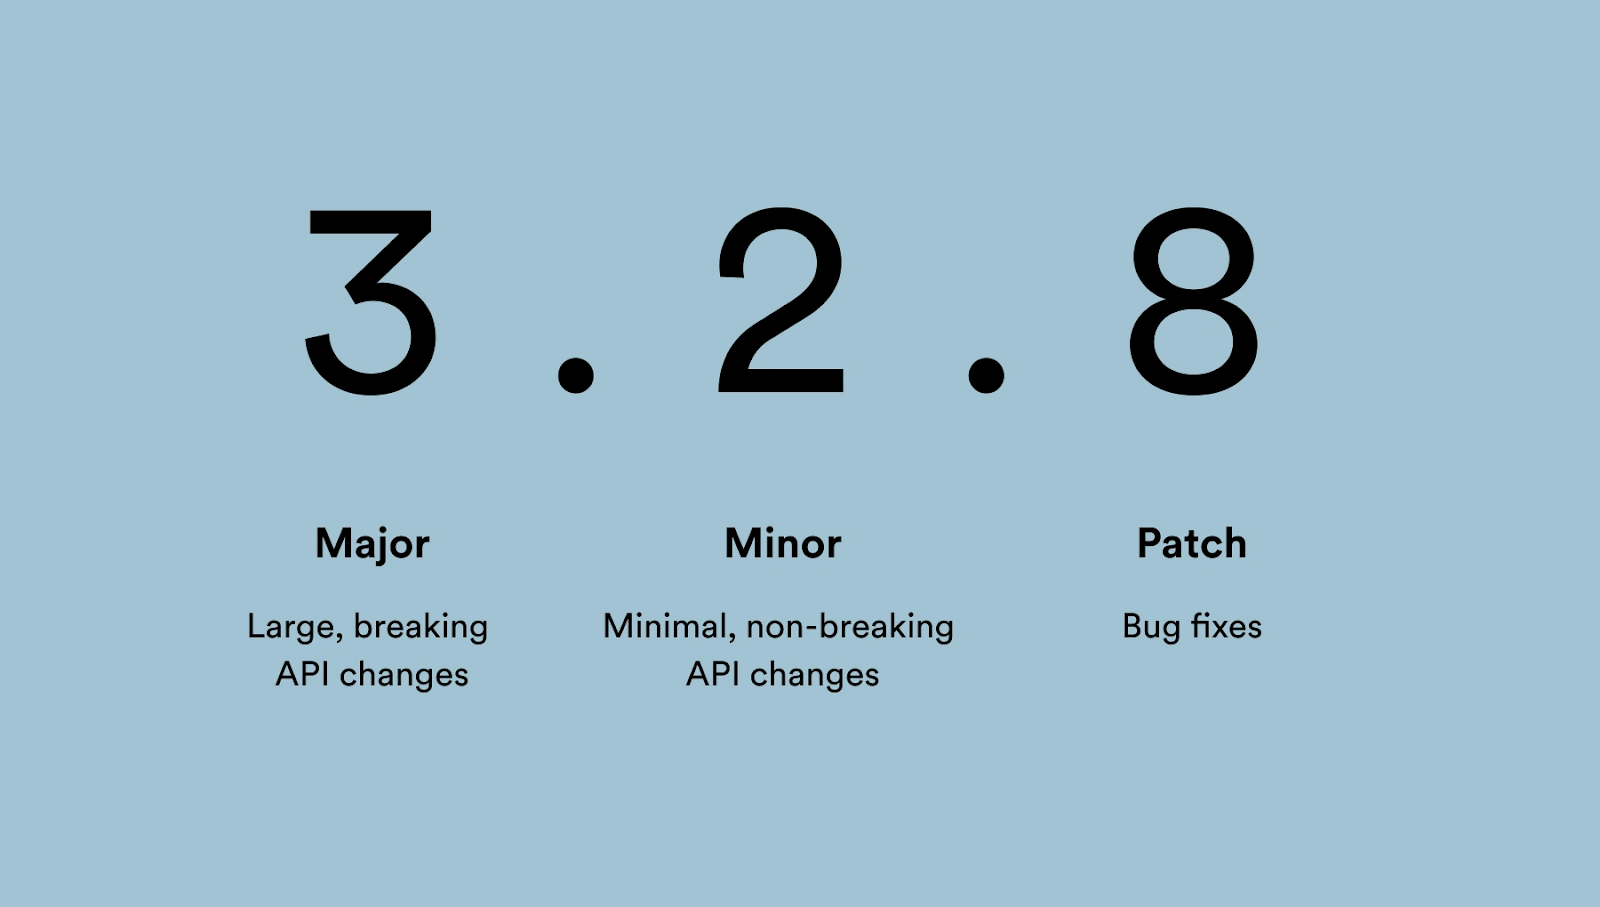 Version number 3.2.8. 3 is the major version (breaking changes), 2 is the minor version (minimal non-breaking changes) and 8 is the patch number (bug fixes).